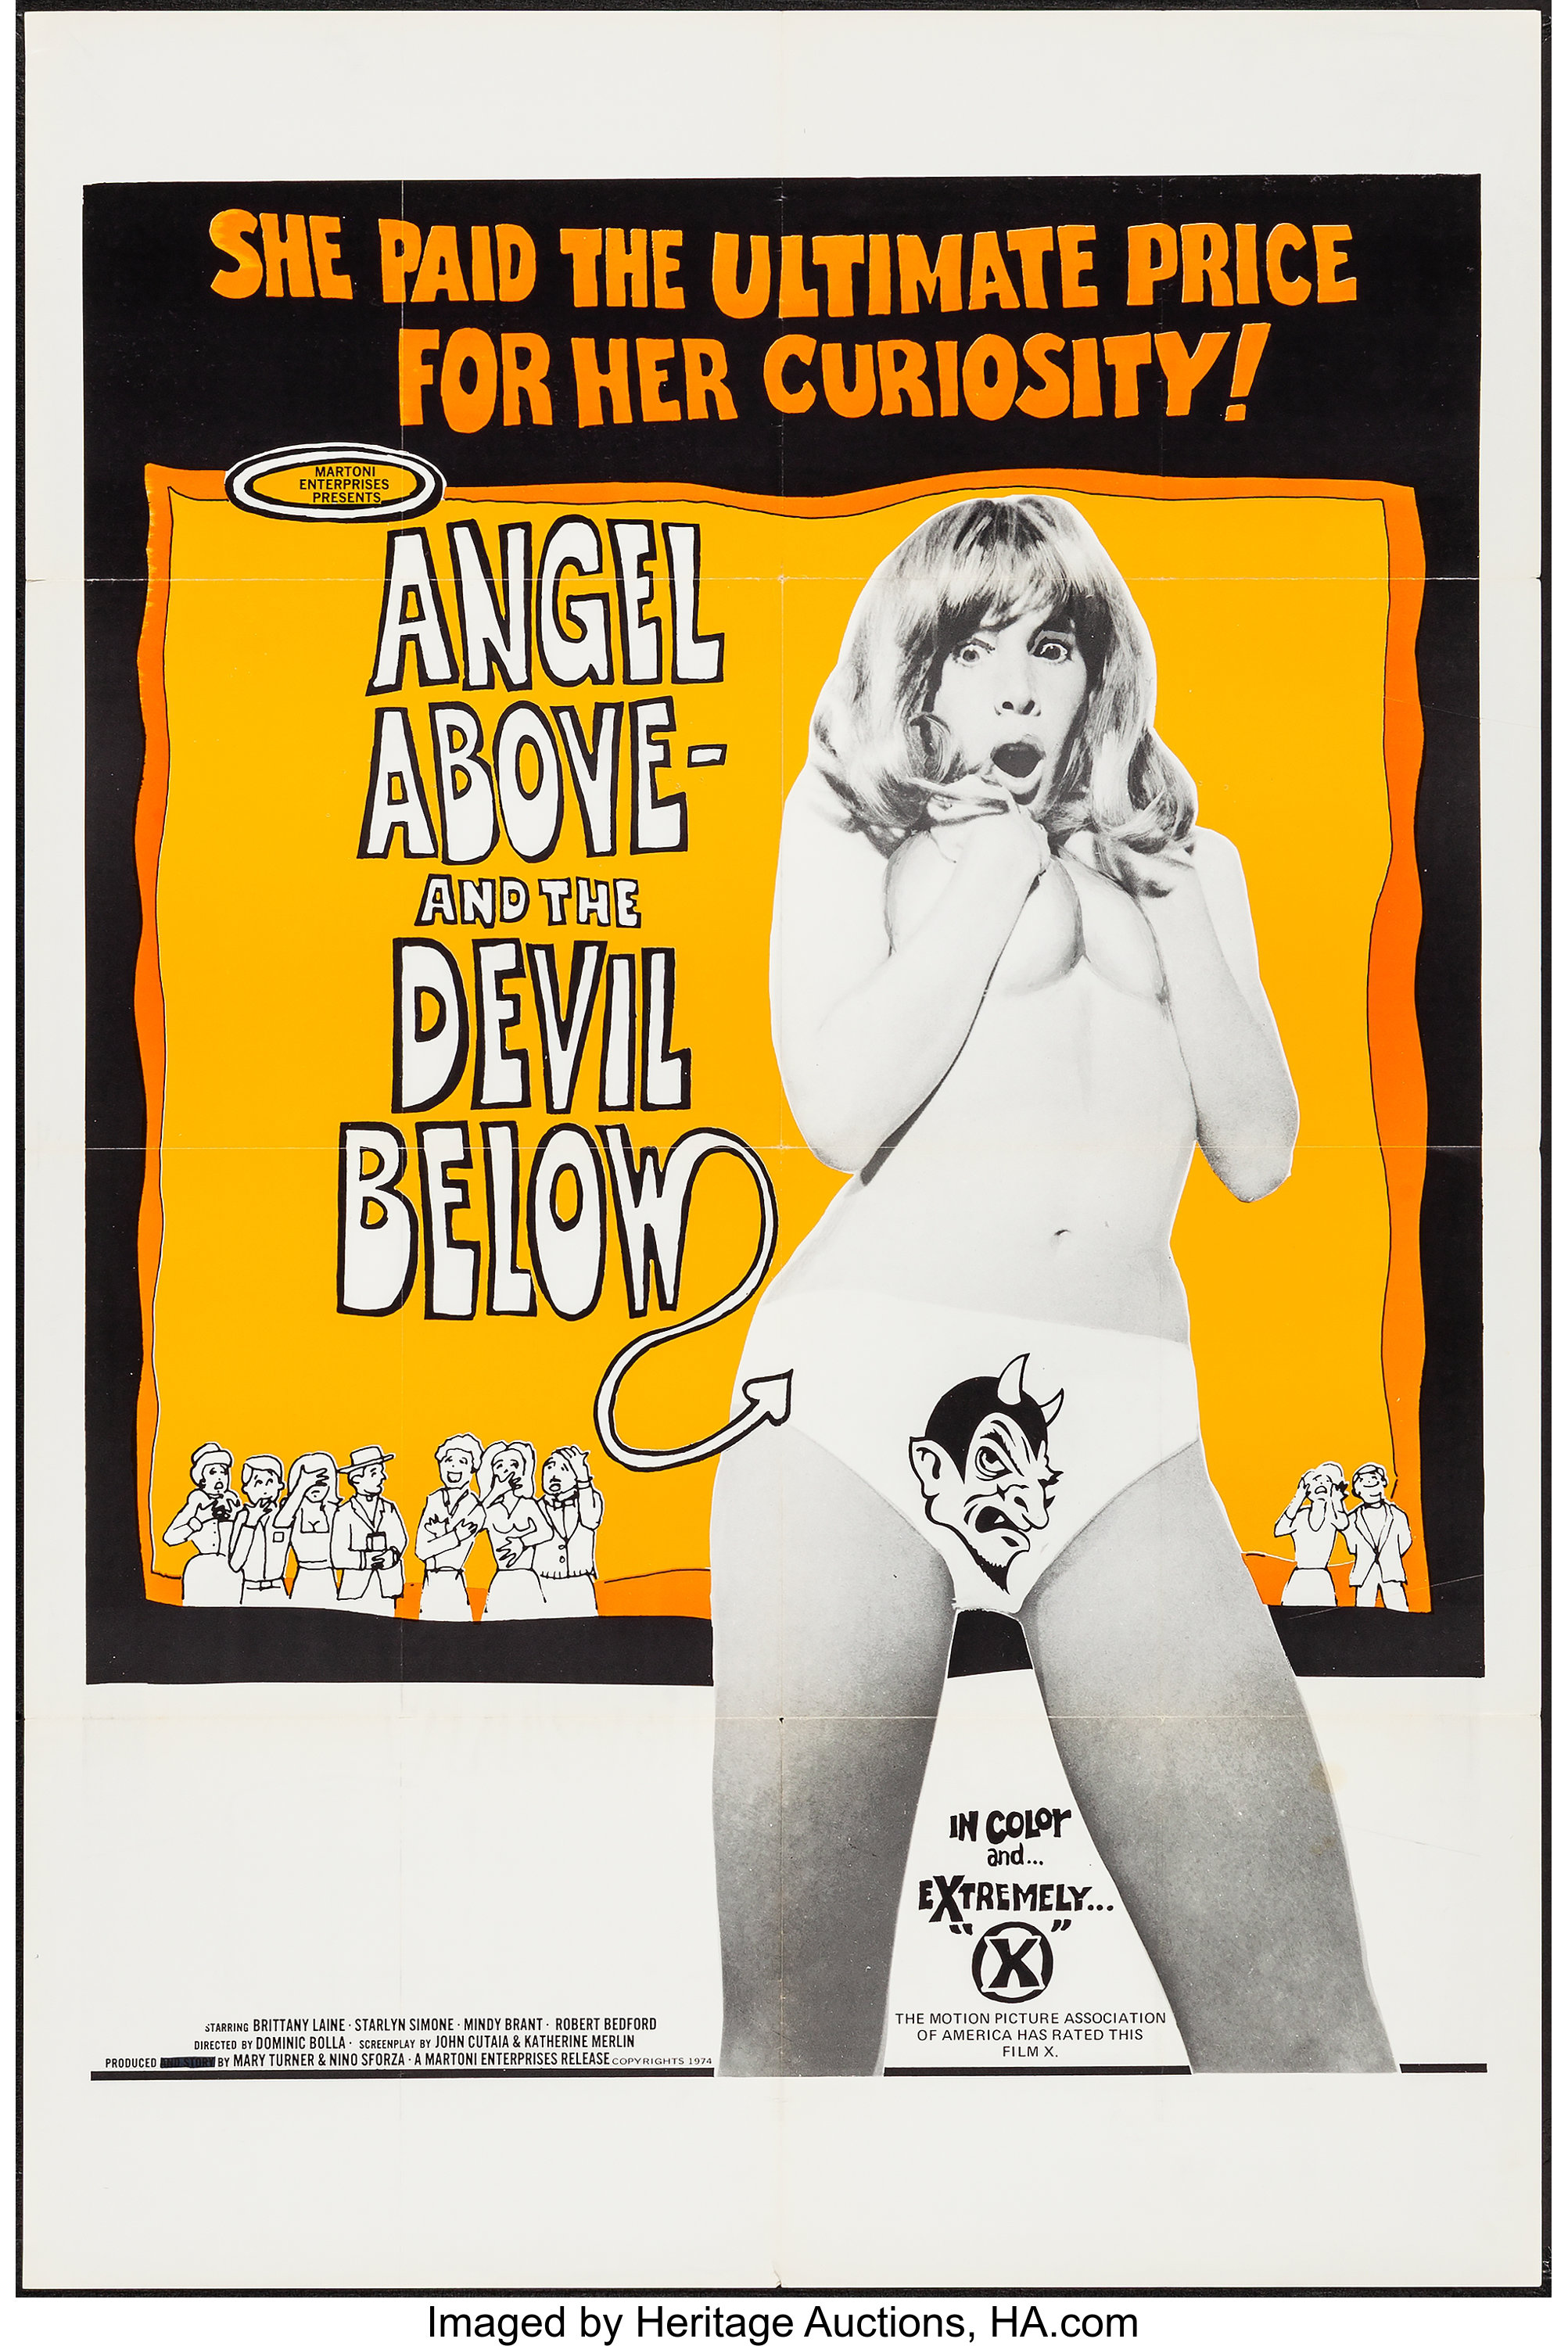 100 Photos of Angel Above The Devil Below 1974